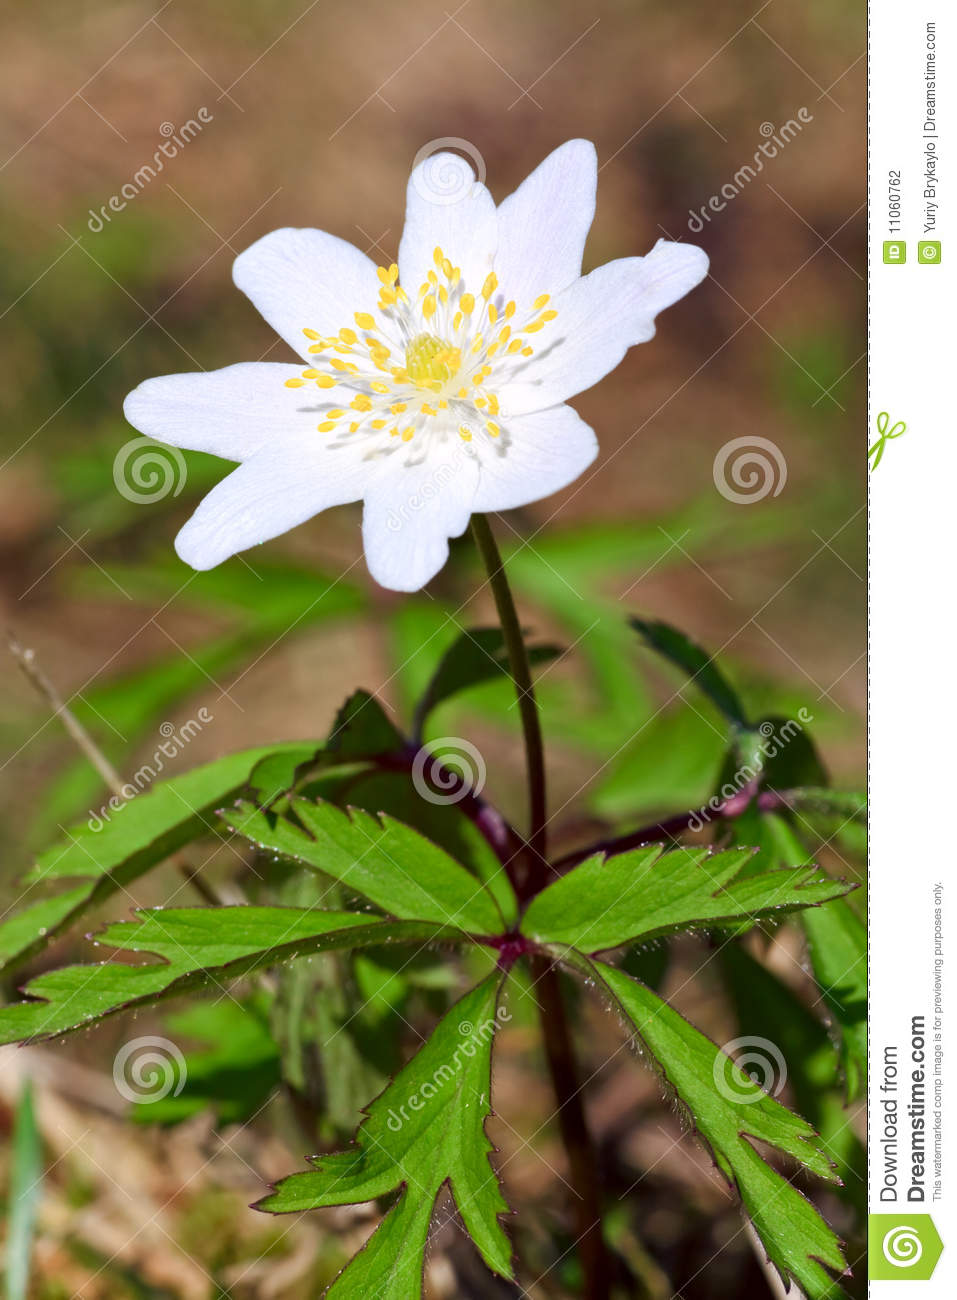 Anemone Plant With White Flower Stock Photo Image Of Petals